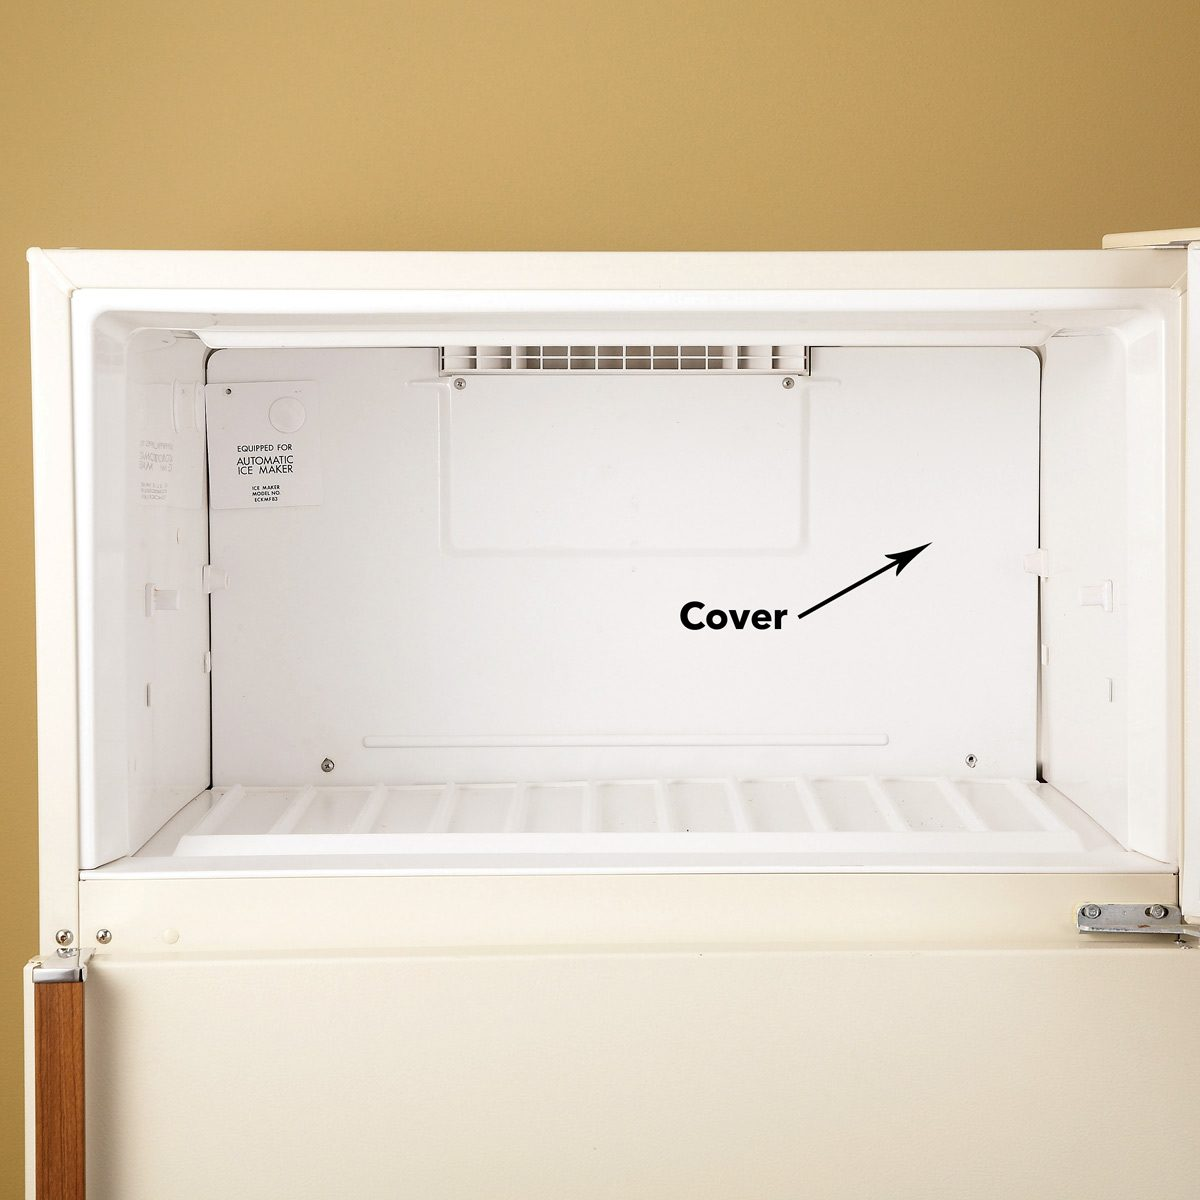 remove refrigerator cover